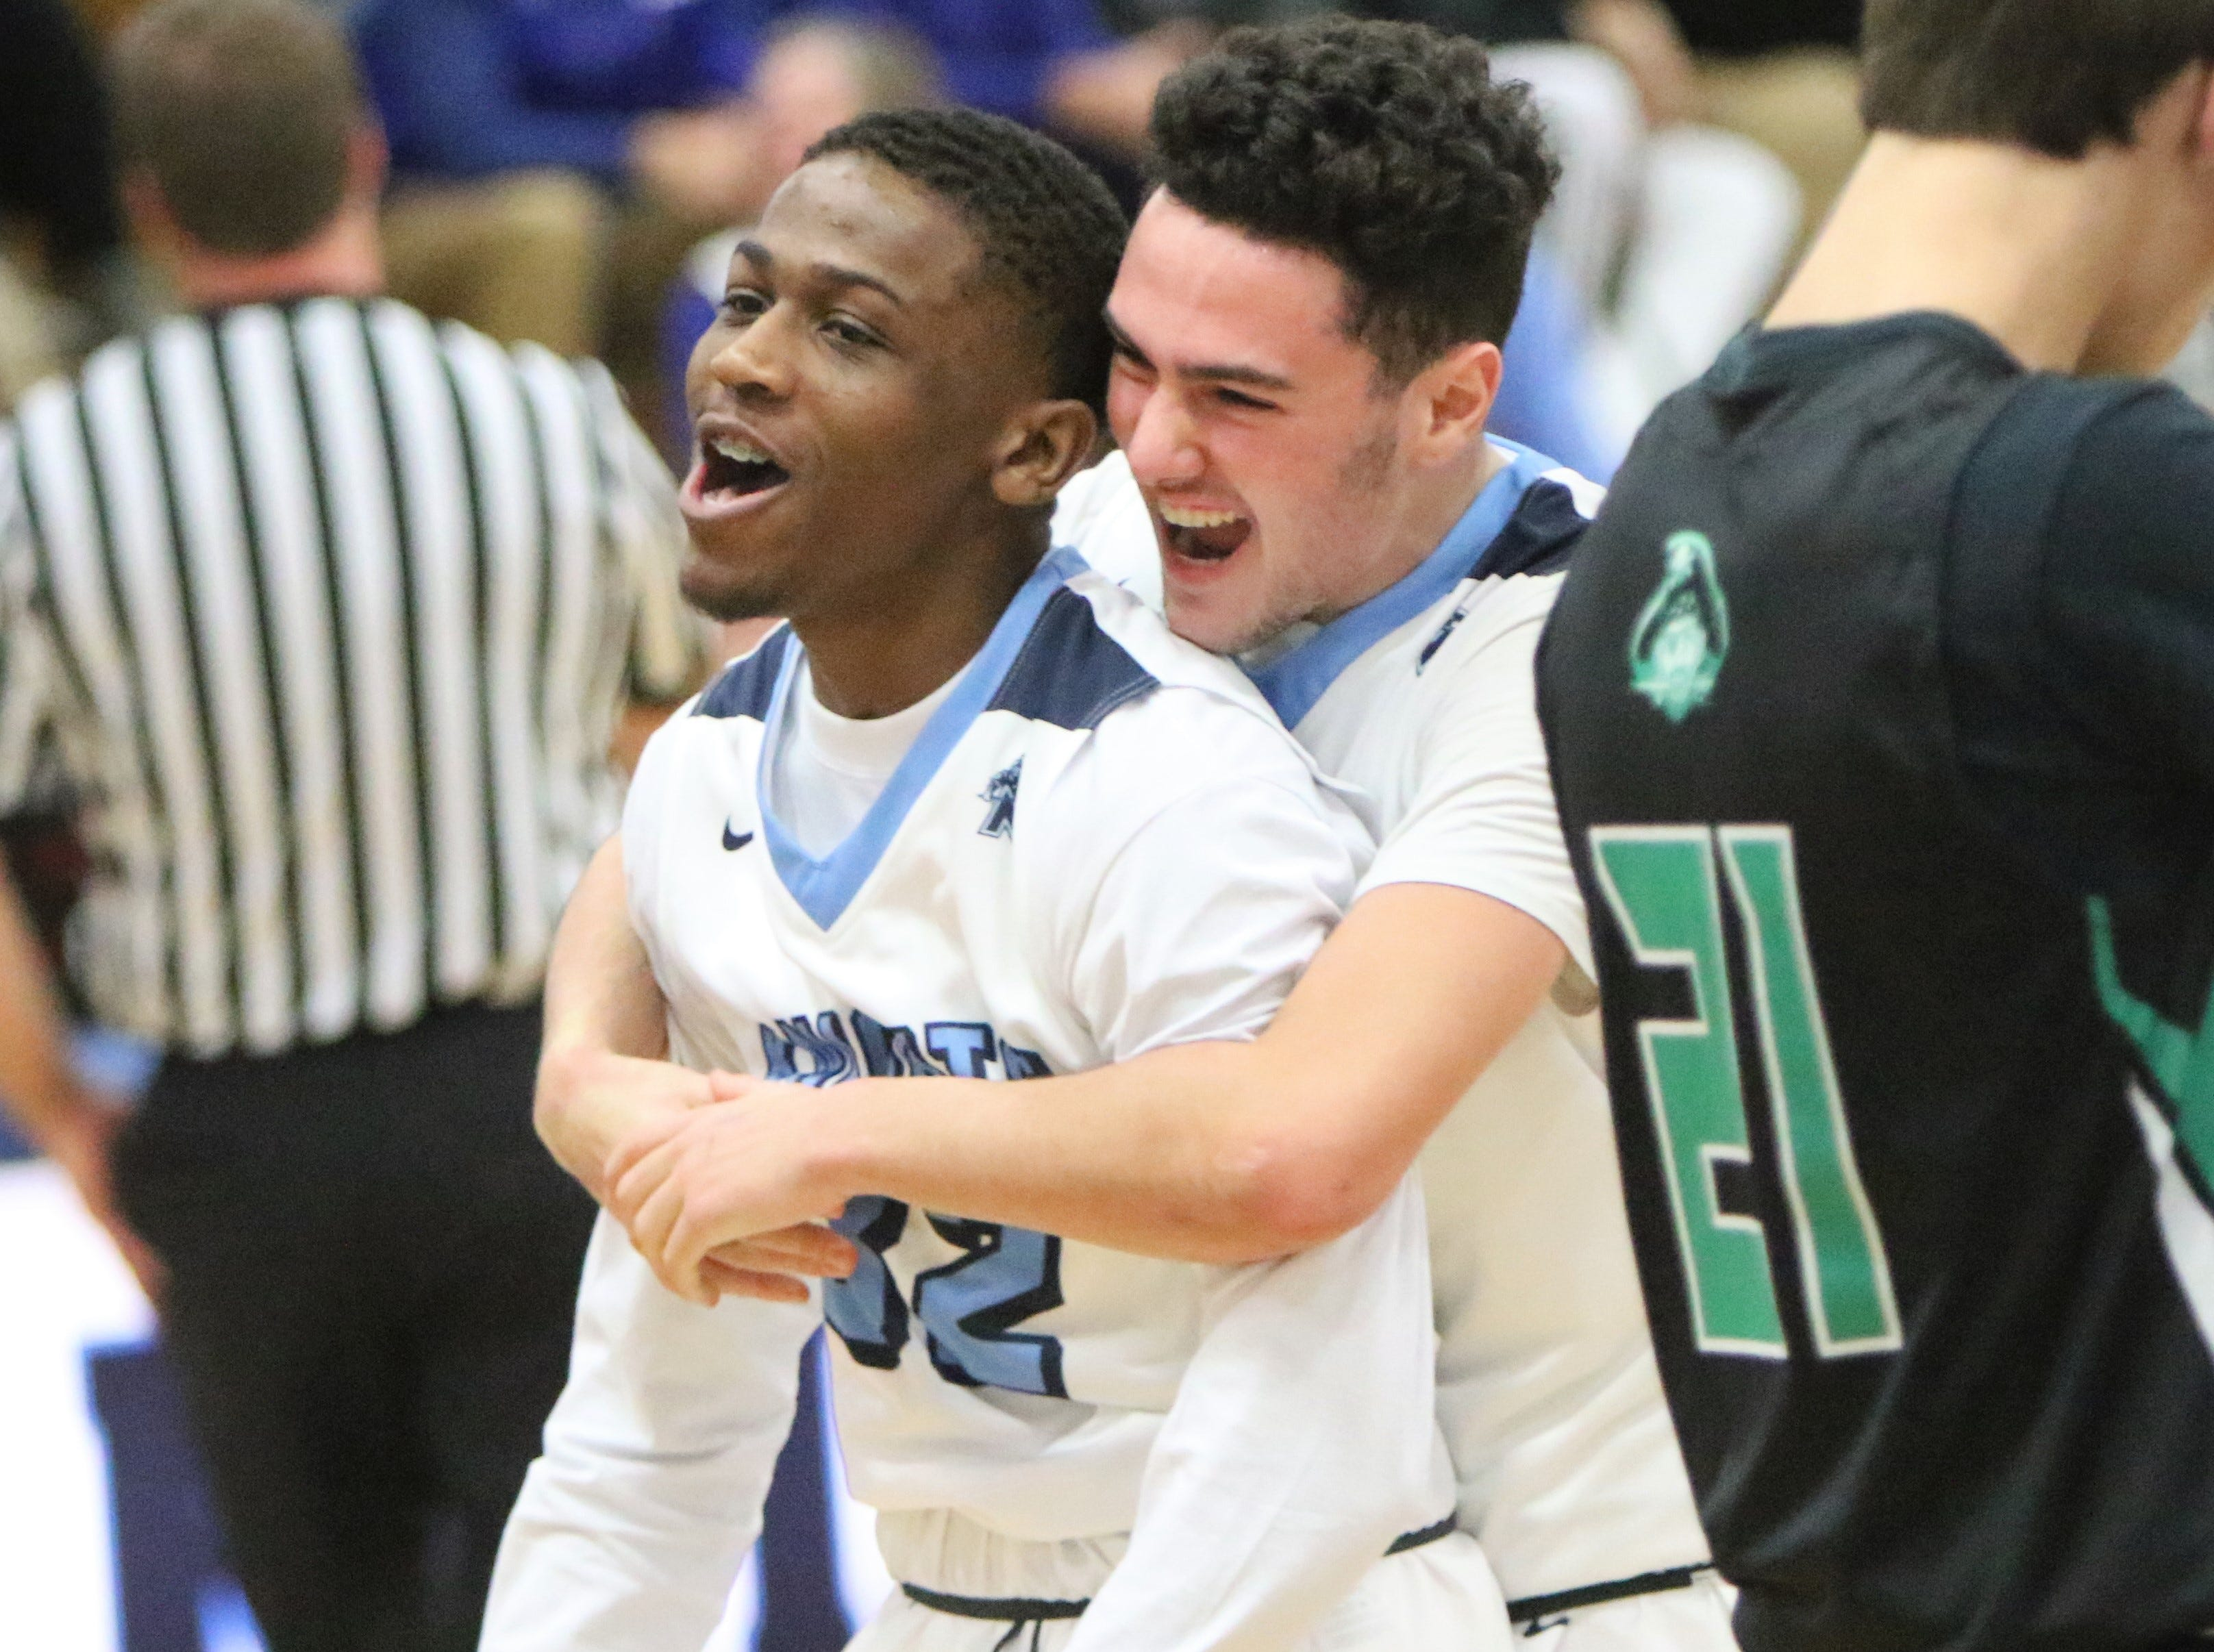 Nicolet's David Rosengarten (back) hugs teammate Jwayne Gordon after Gordon scored through a foul against Port Washington on Wednesday, Dec. 5.